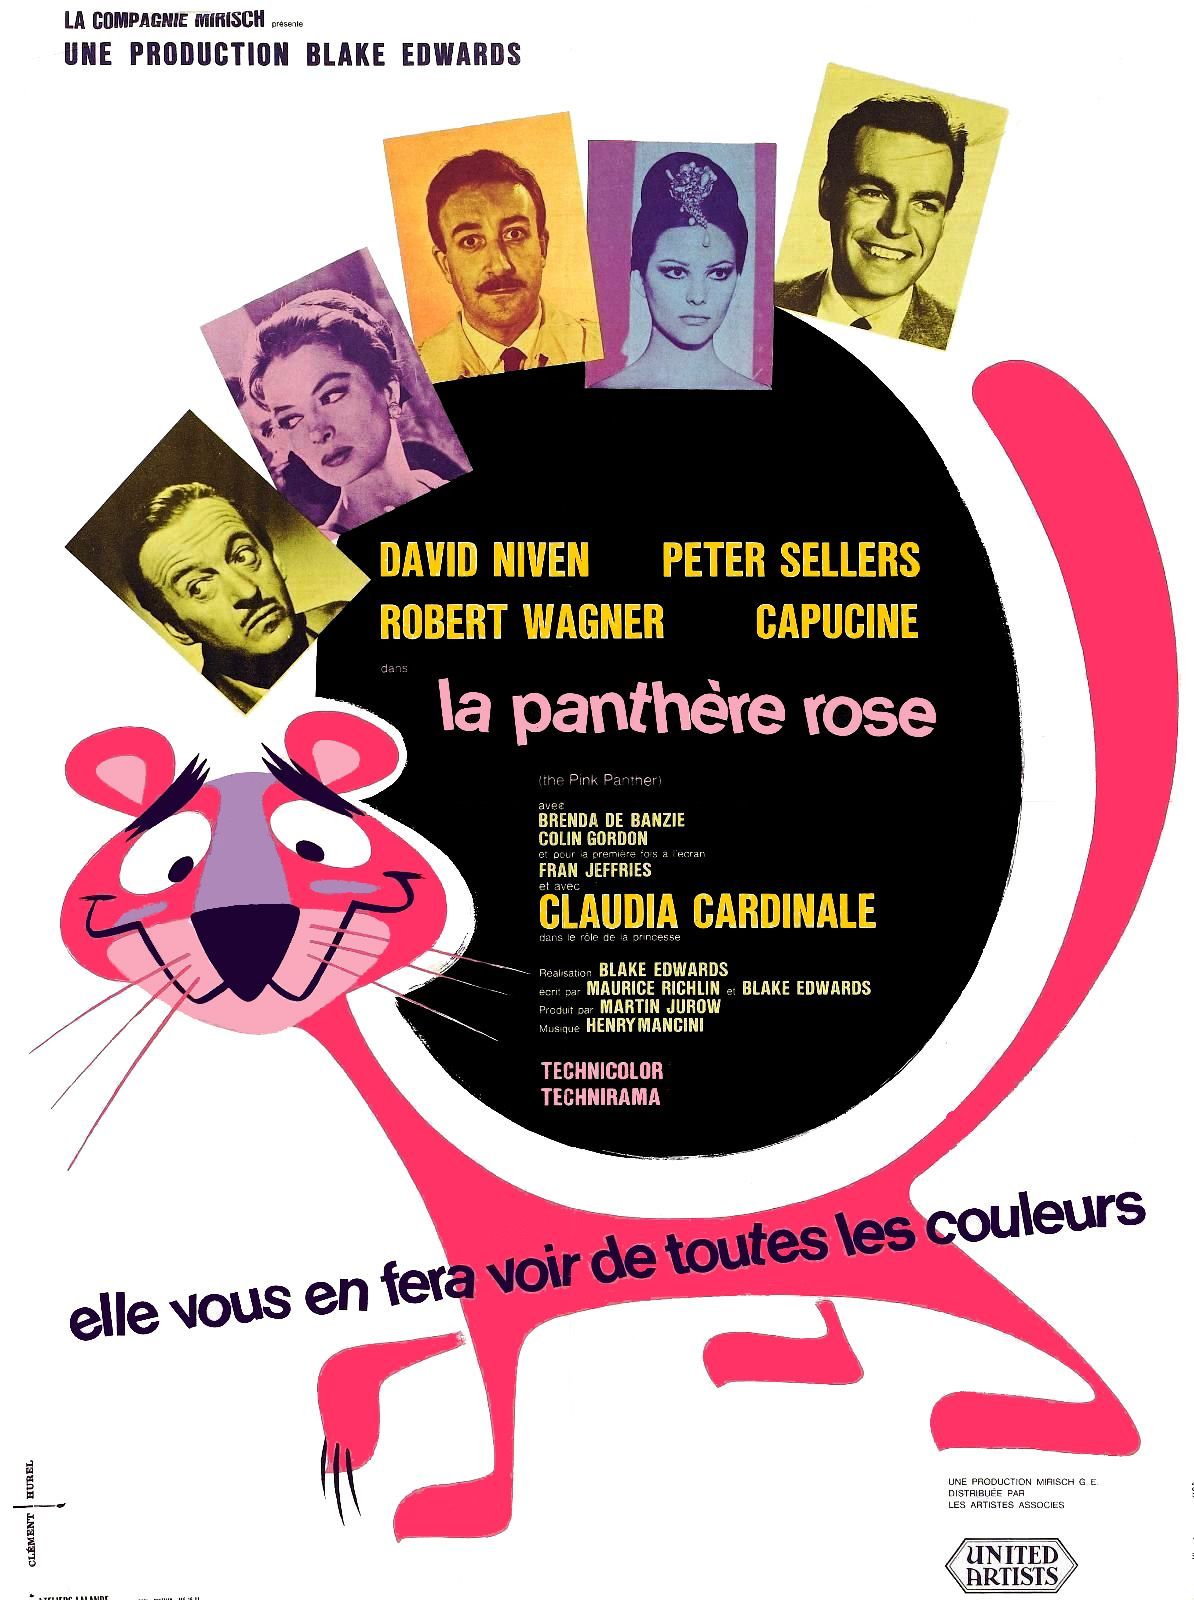 la panthere rose avec peter sellers